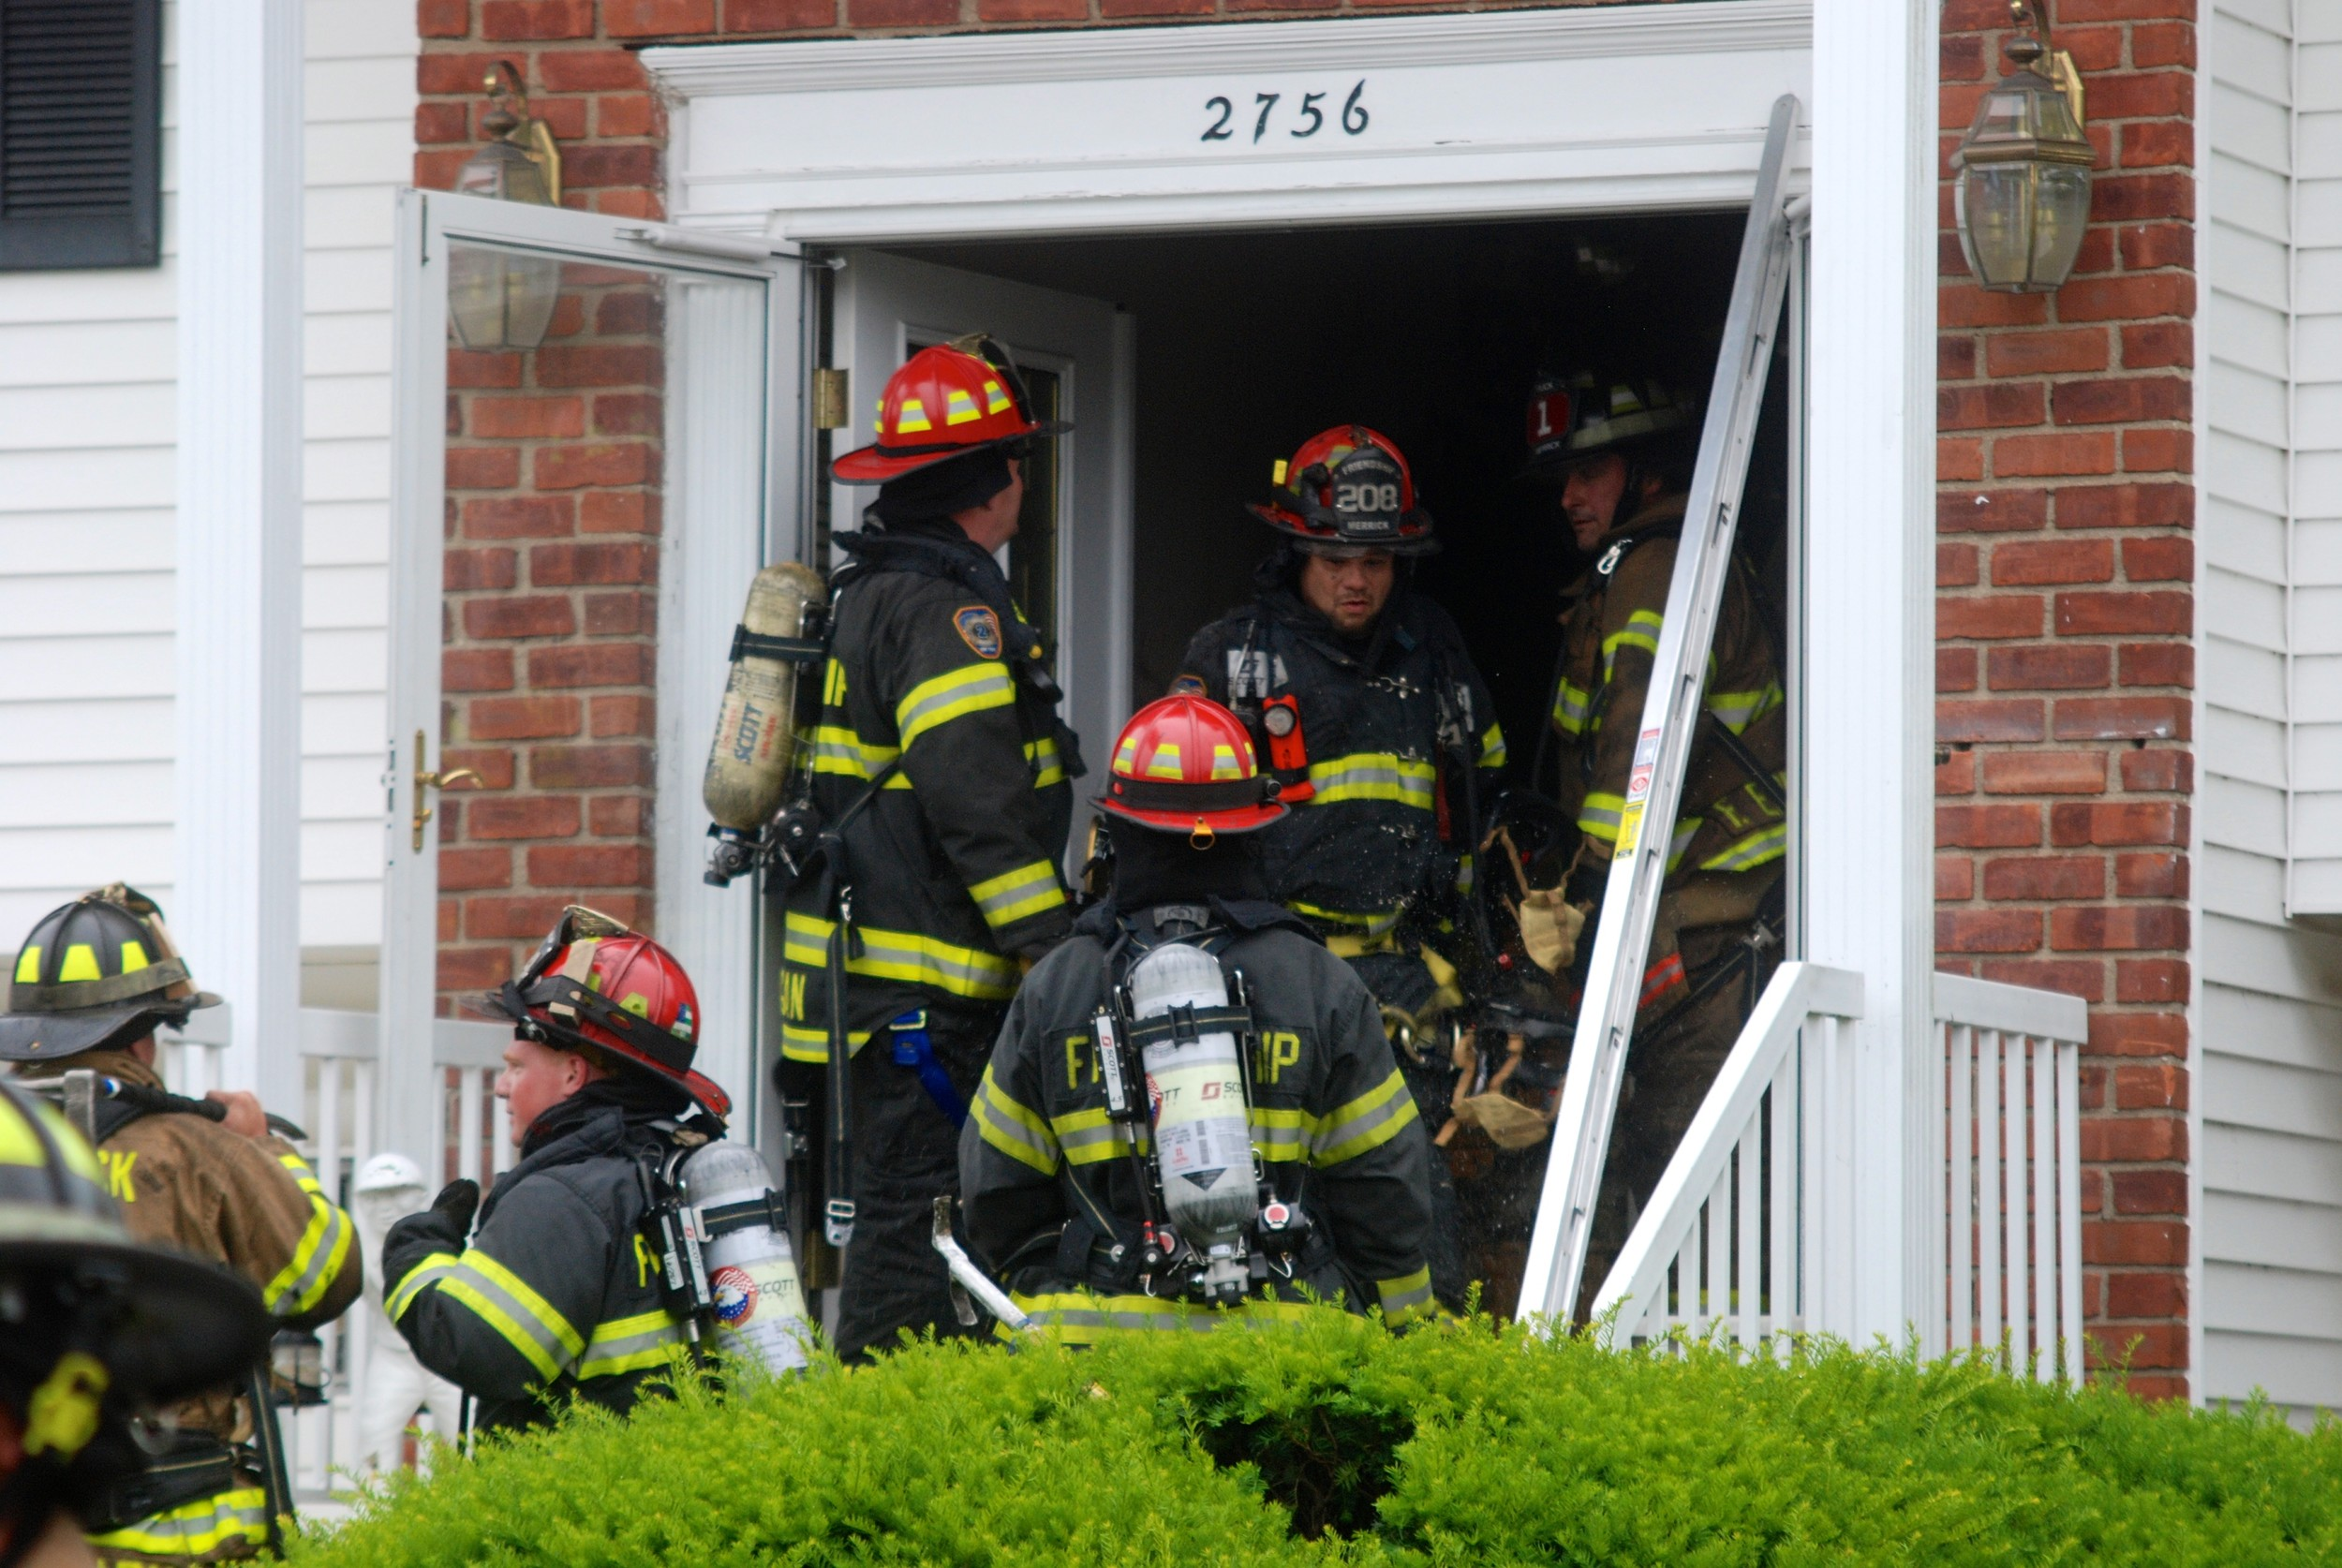 Firefighters quickly extinguished a blaze that tore through the upper floor of a south Merrick home on Friday afternoon.